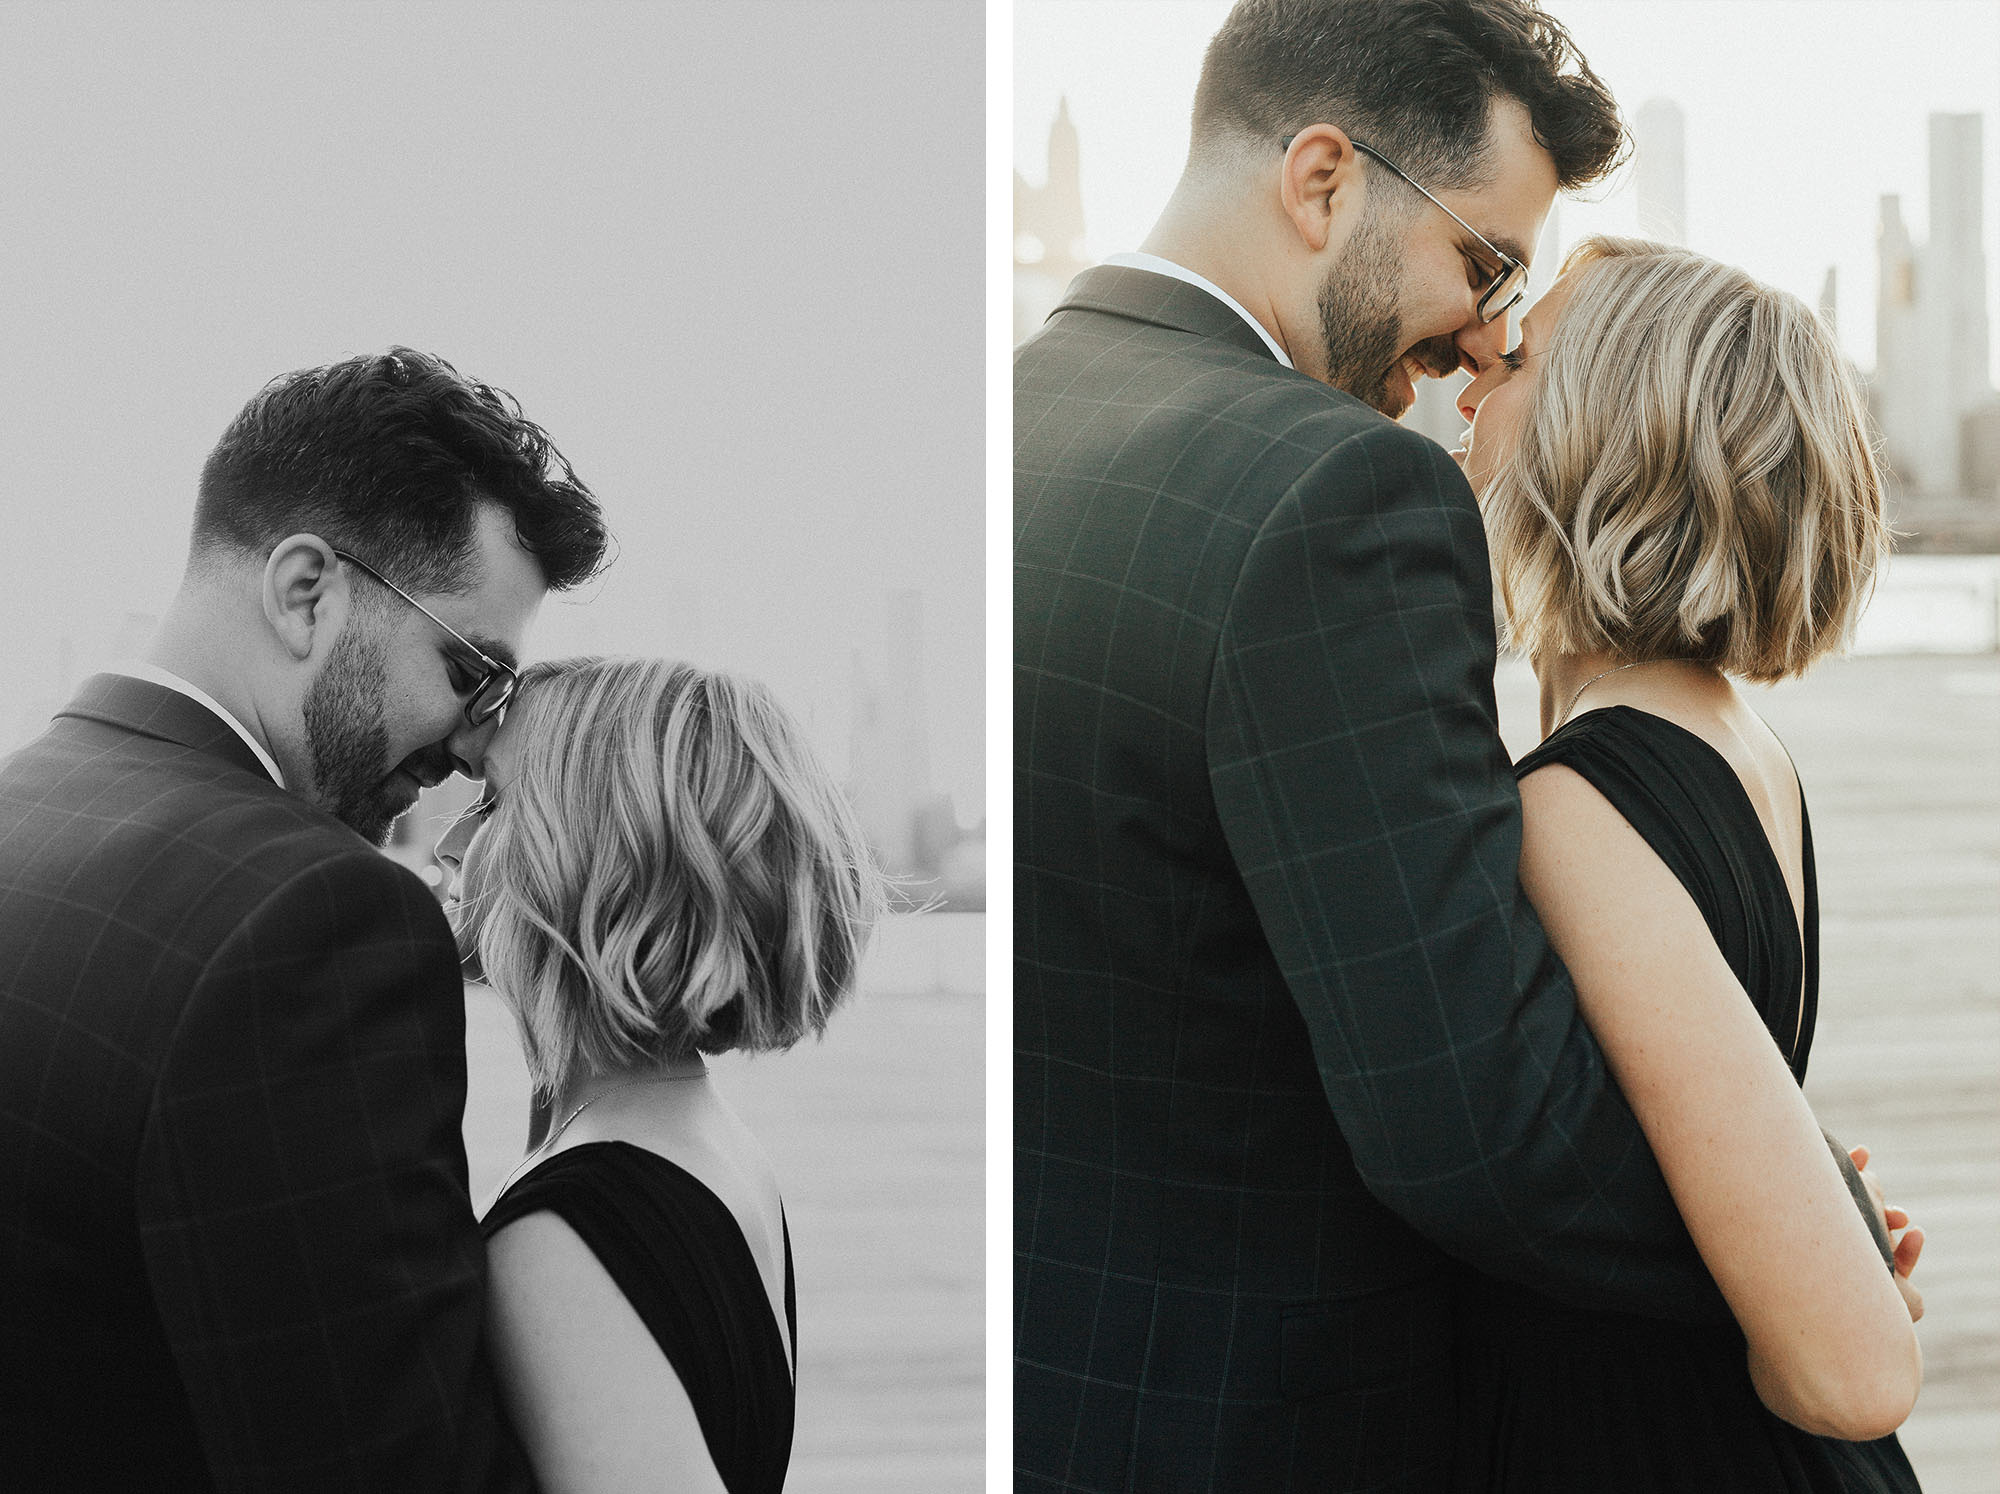 brooklyn_nyc_engagement_photography-14-of-18.jpg